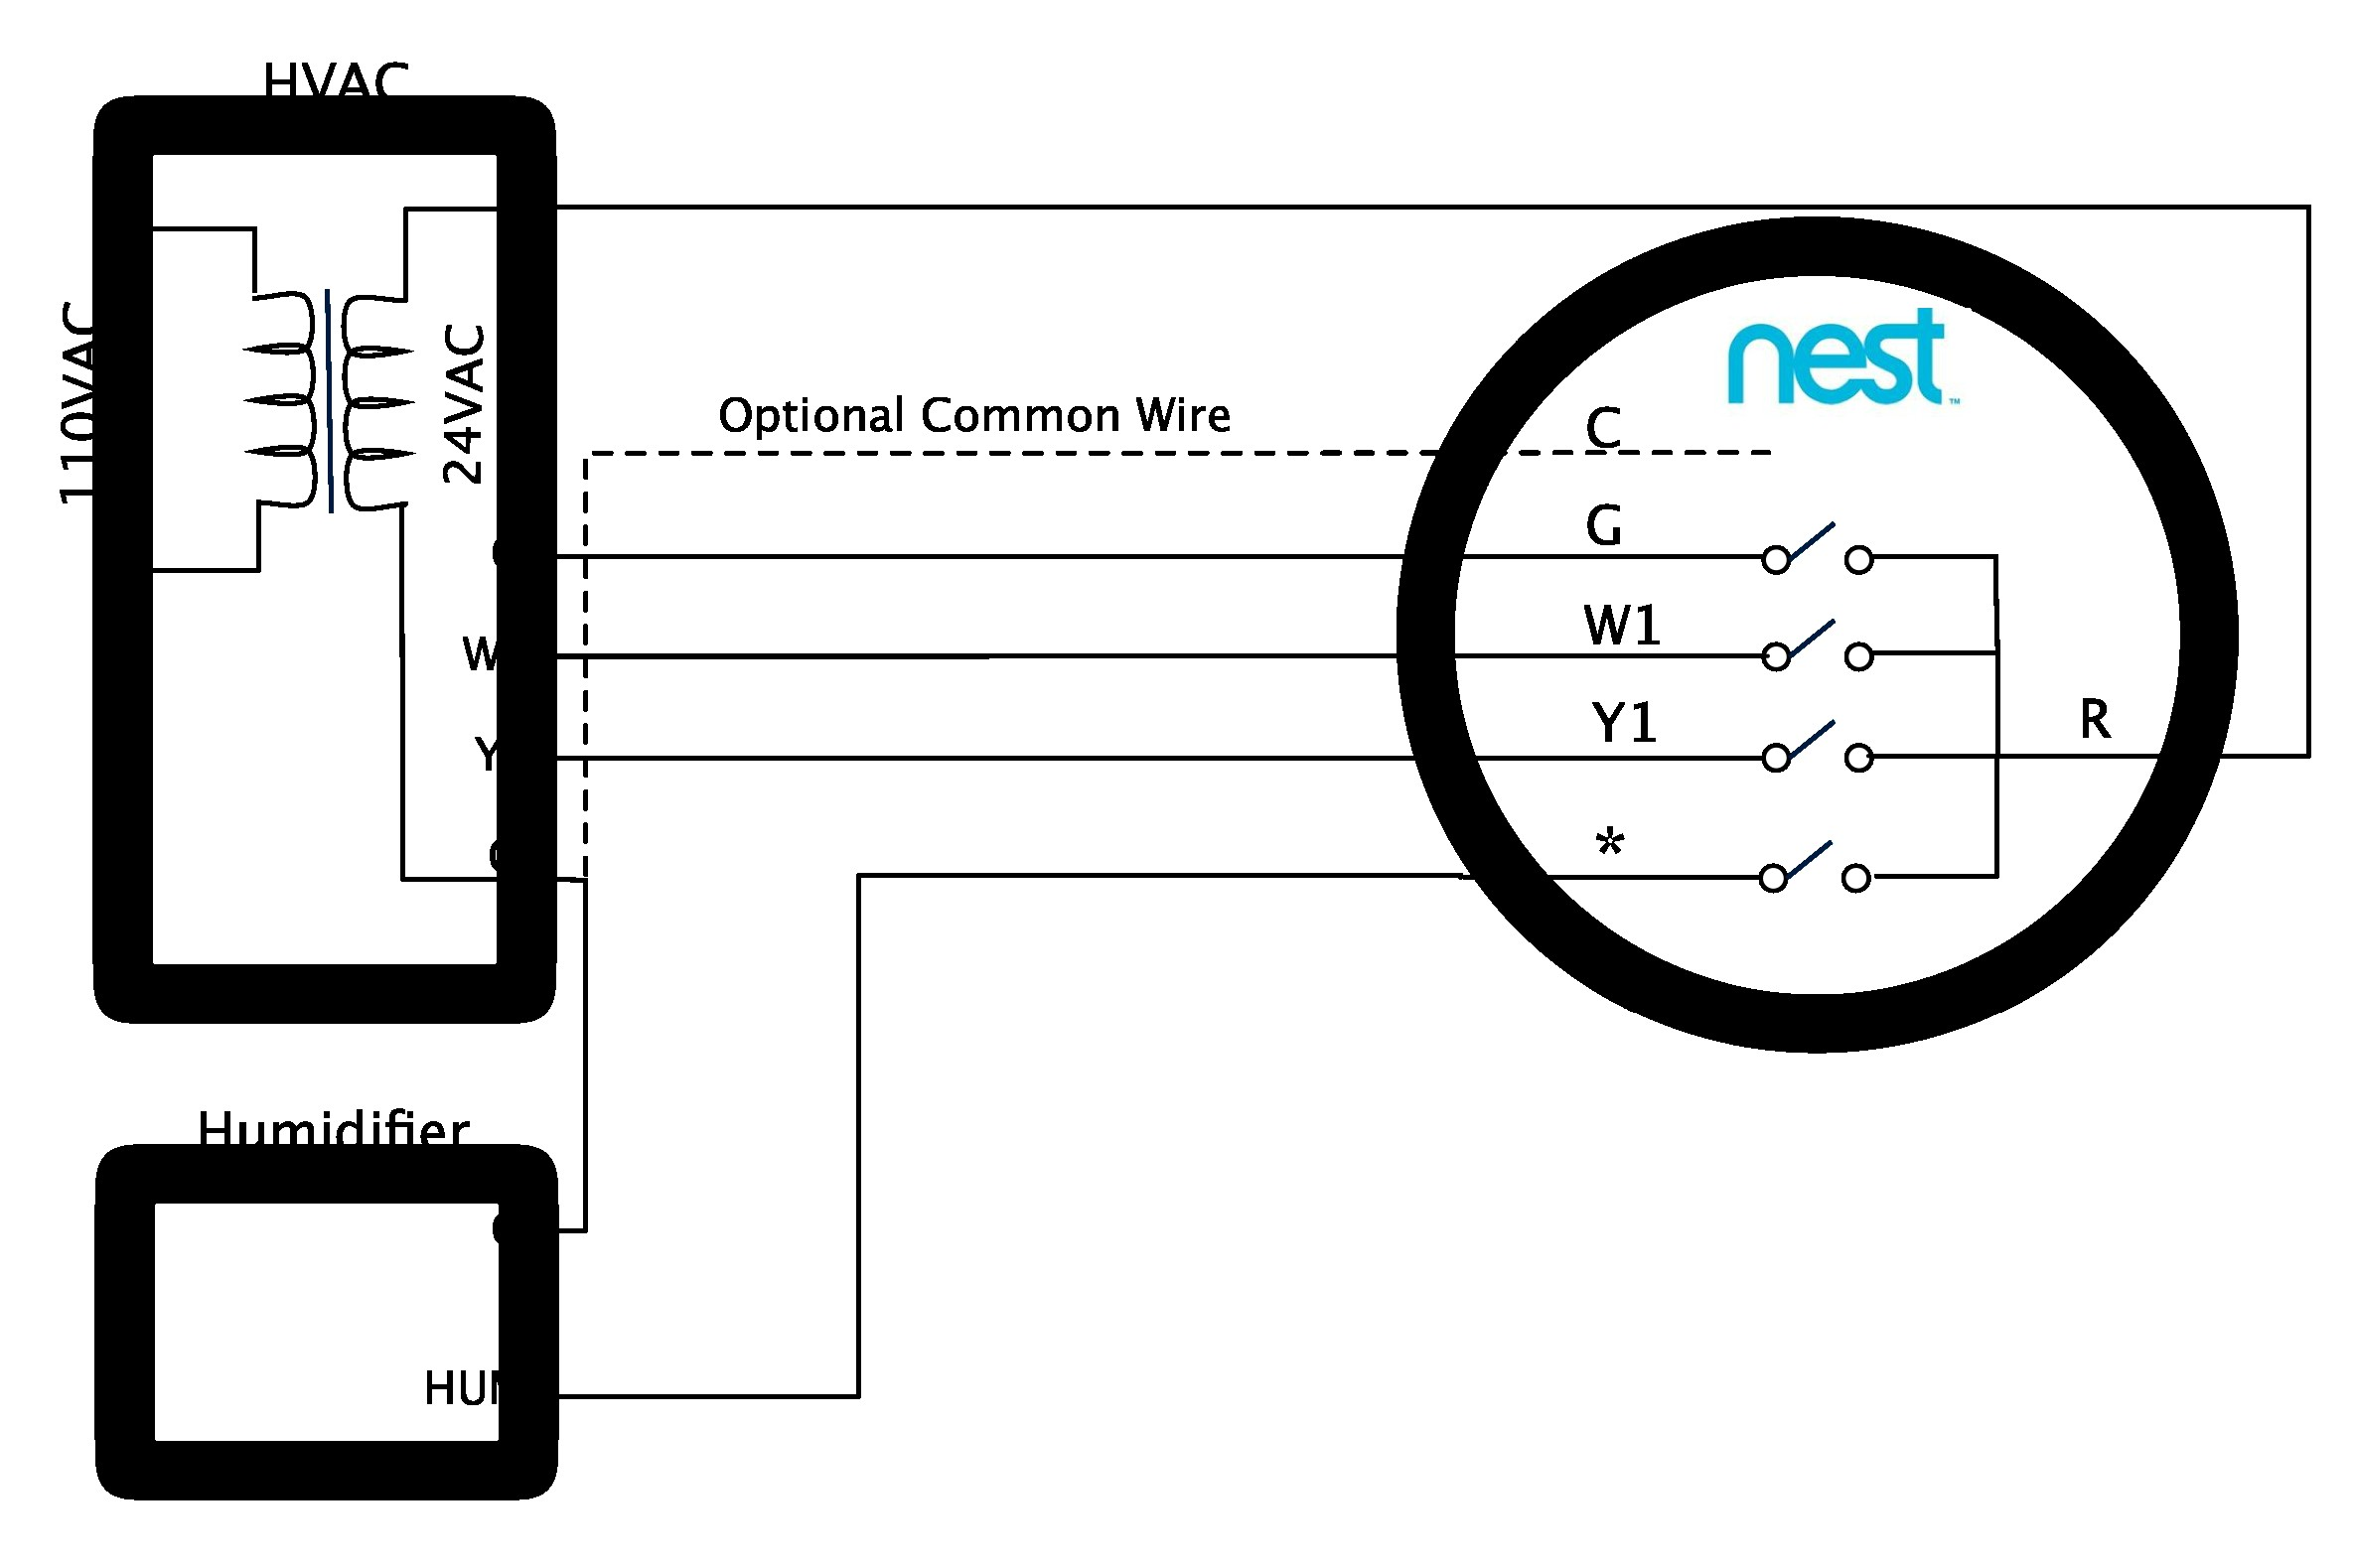 Nest Thermostat Wiring Diagram New House Old Tech Replacing A Learning Advanced Installation And Setup Help For In Of